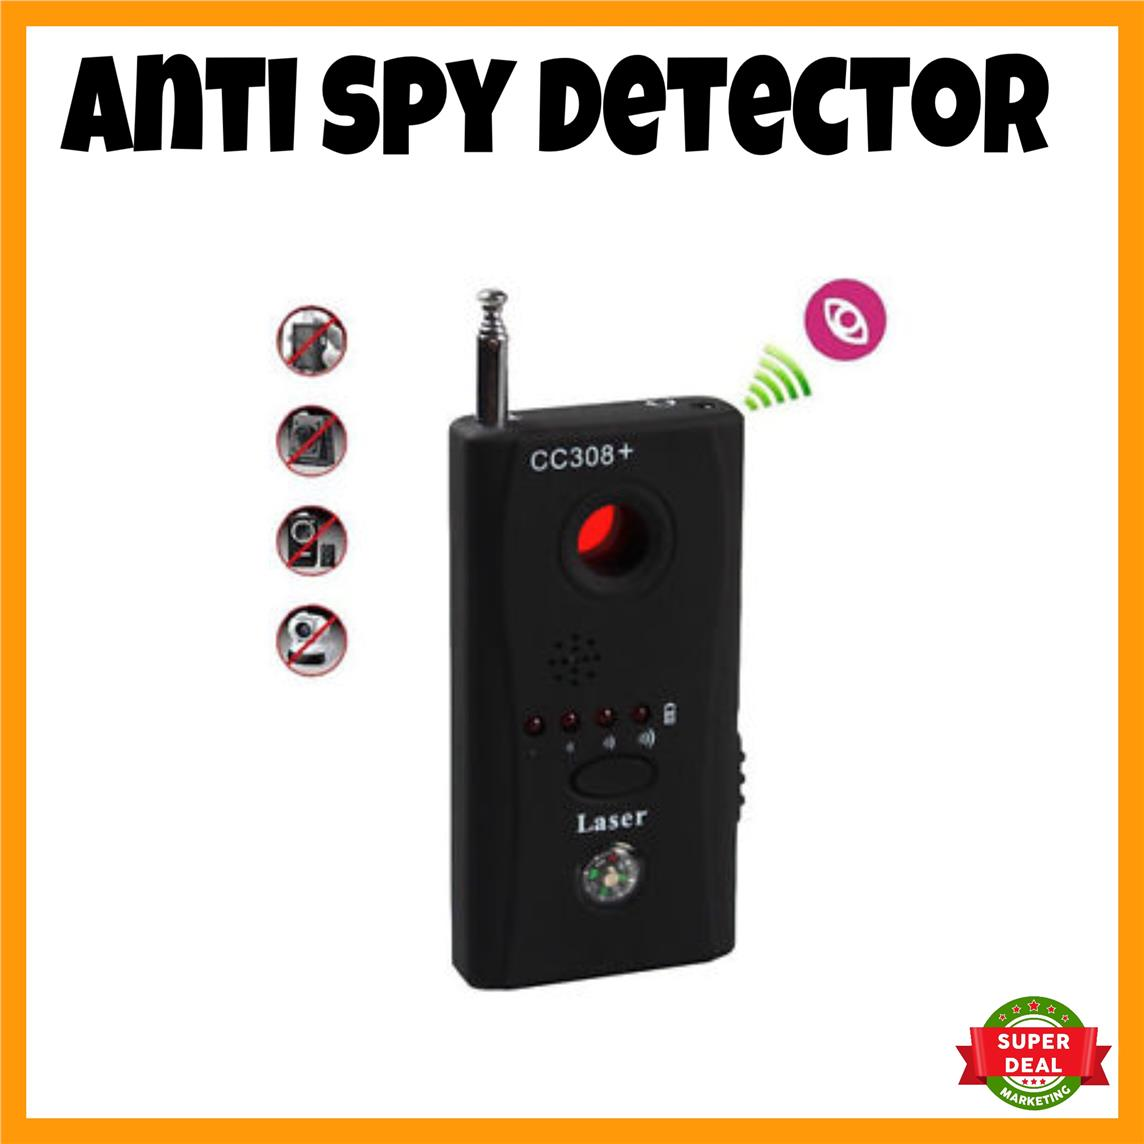 Spy Camera Detector Anti Spy Detector Hidden Camera Detector CC308+